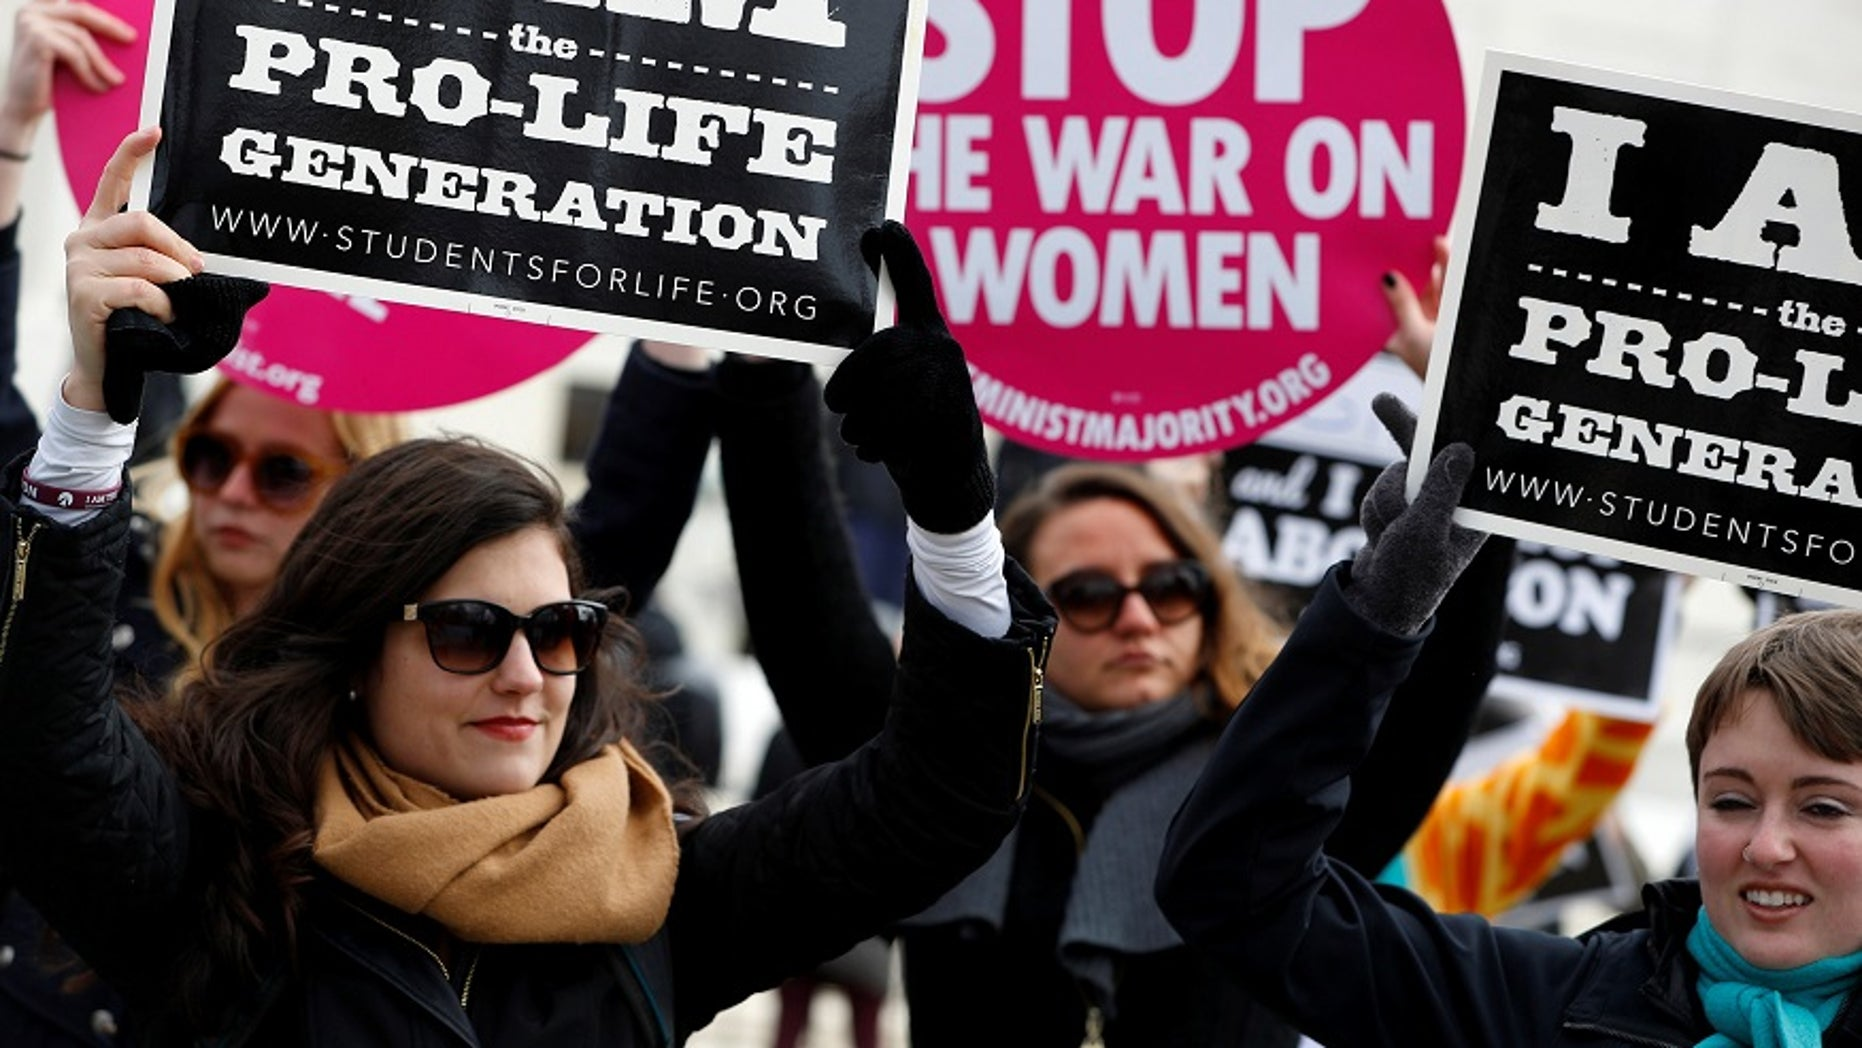 FILE -- Pro-life activists gather for the National March for Life rally in Washington January 27, 2017.